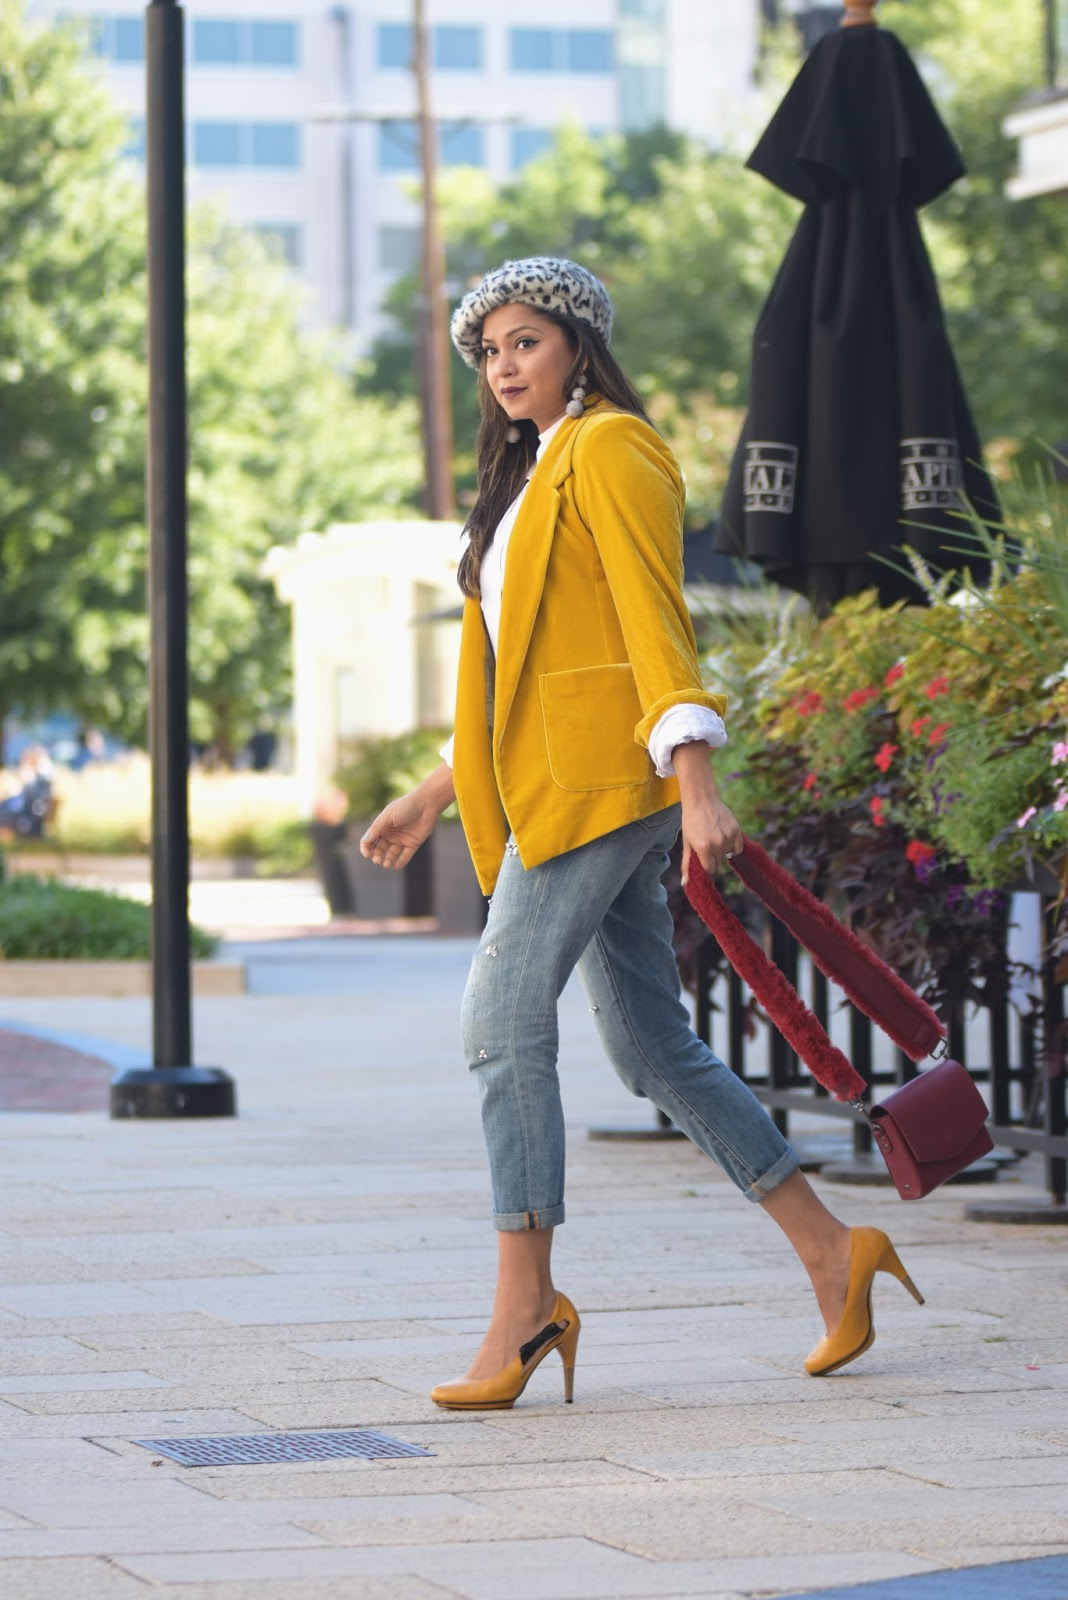 MUSTARD YELLOW JACKET, velvet blazer, fashion blogger, embellished sequin jean, boyfriend jeans, beret , animal print hat, fur bag, yello jacket casual outfit, myriad musings